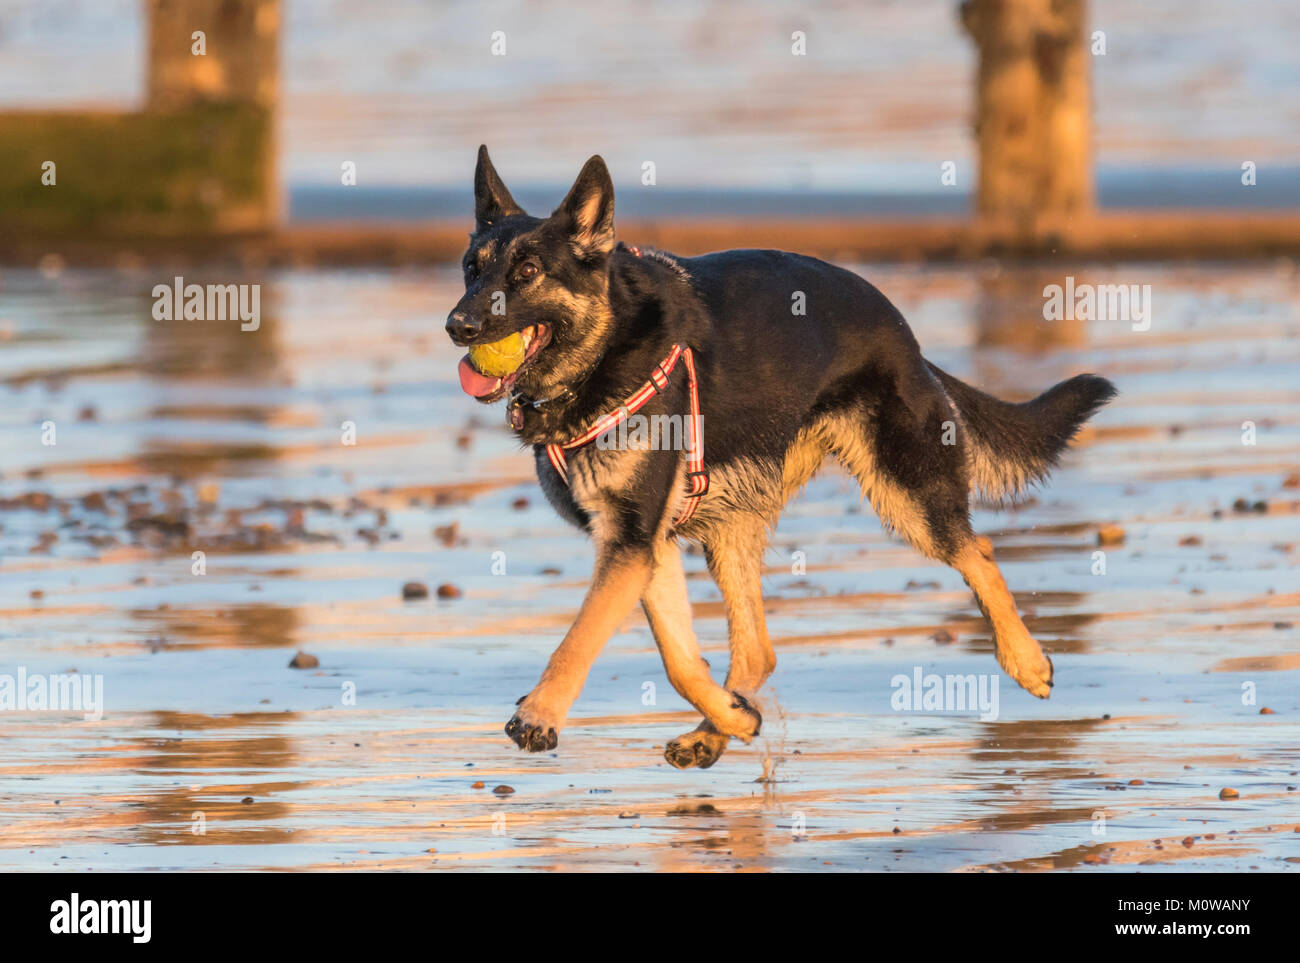 German Shepherd or Alsatian dog running on a sandy beach with a ball in it's mouth. - Stock Image